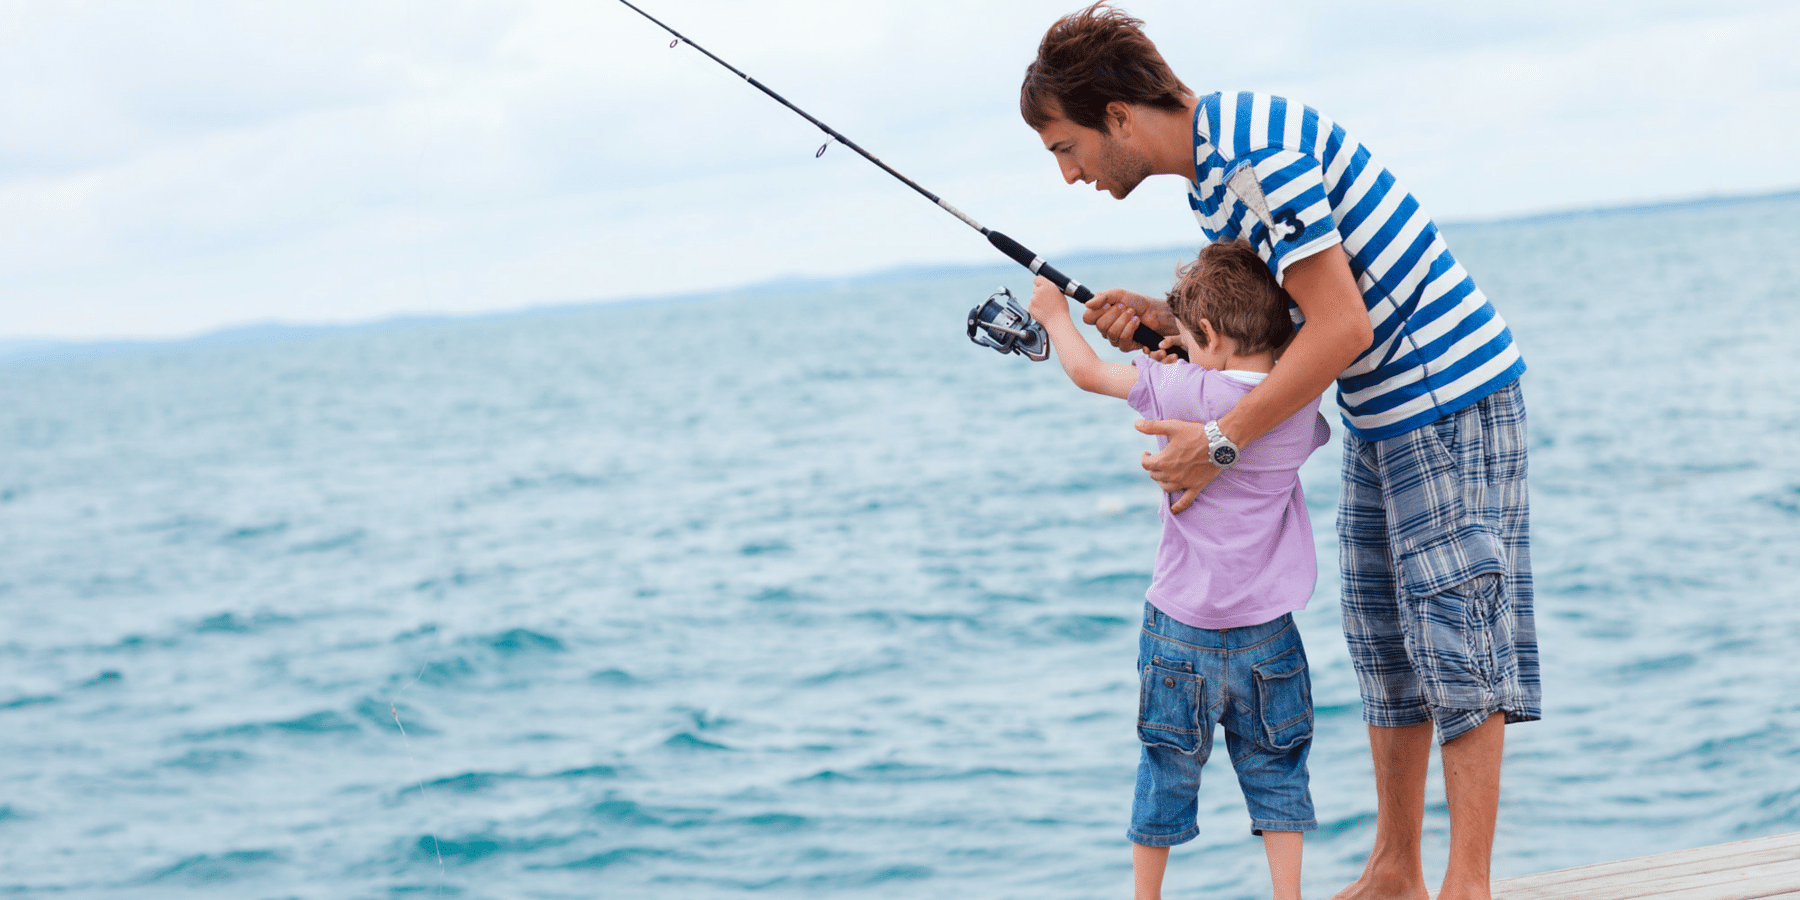 Fishing central florida allen vacation rental homes for Fishing in orlando florida